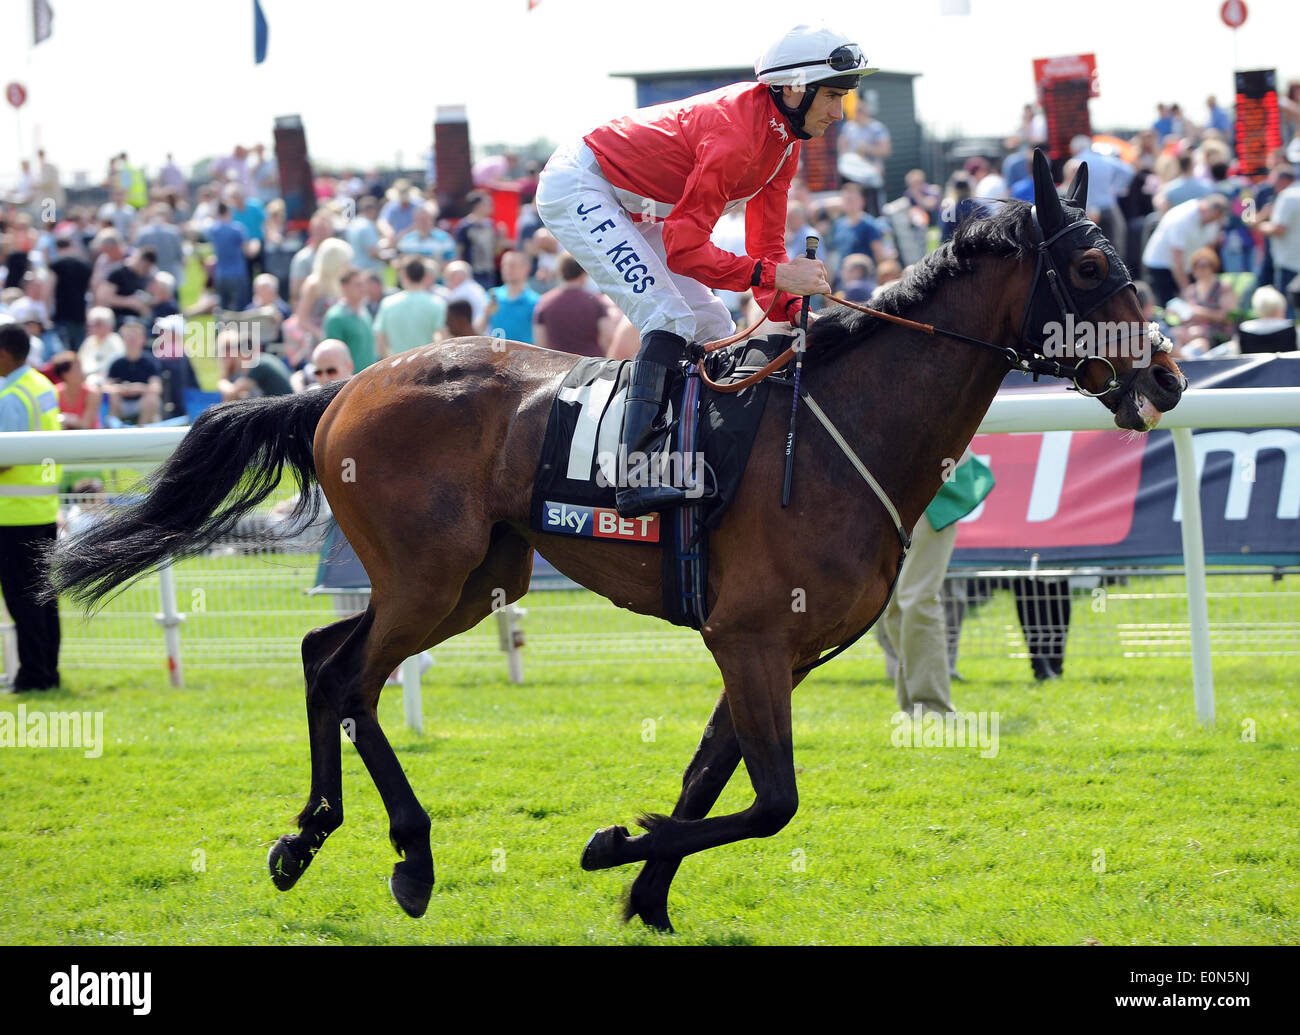 REPEATER RIDDEN BY DANIEL TUDHOPE YORK RACECOURSE YORK ENGLAND 16 May 2014 - Stock Image